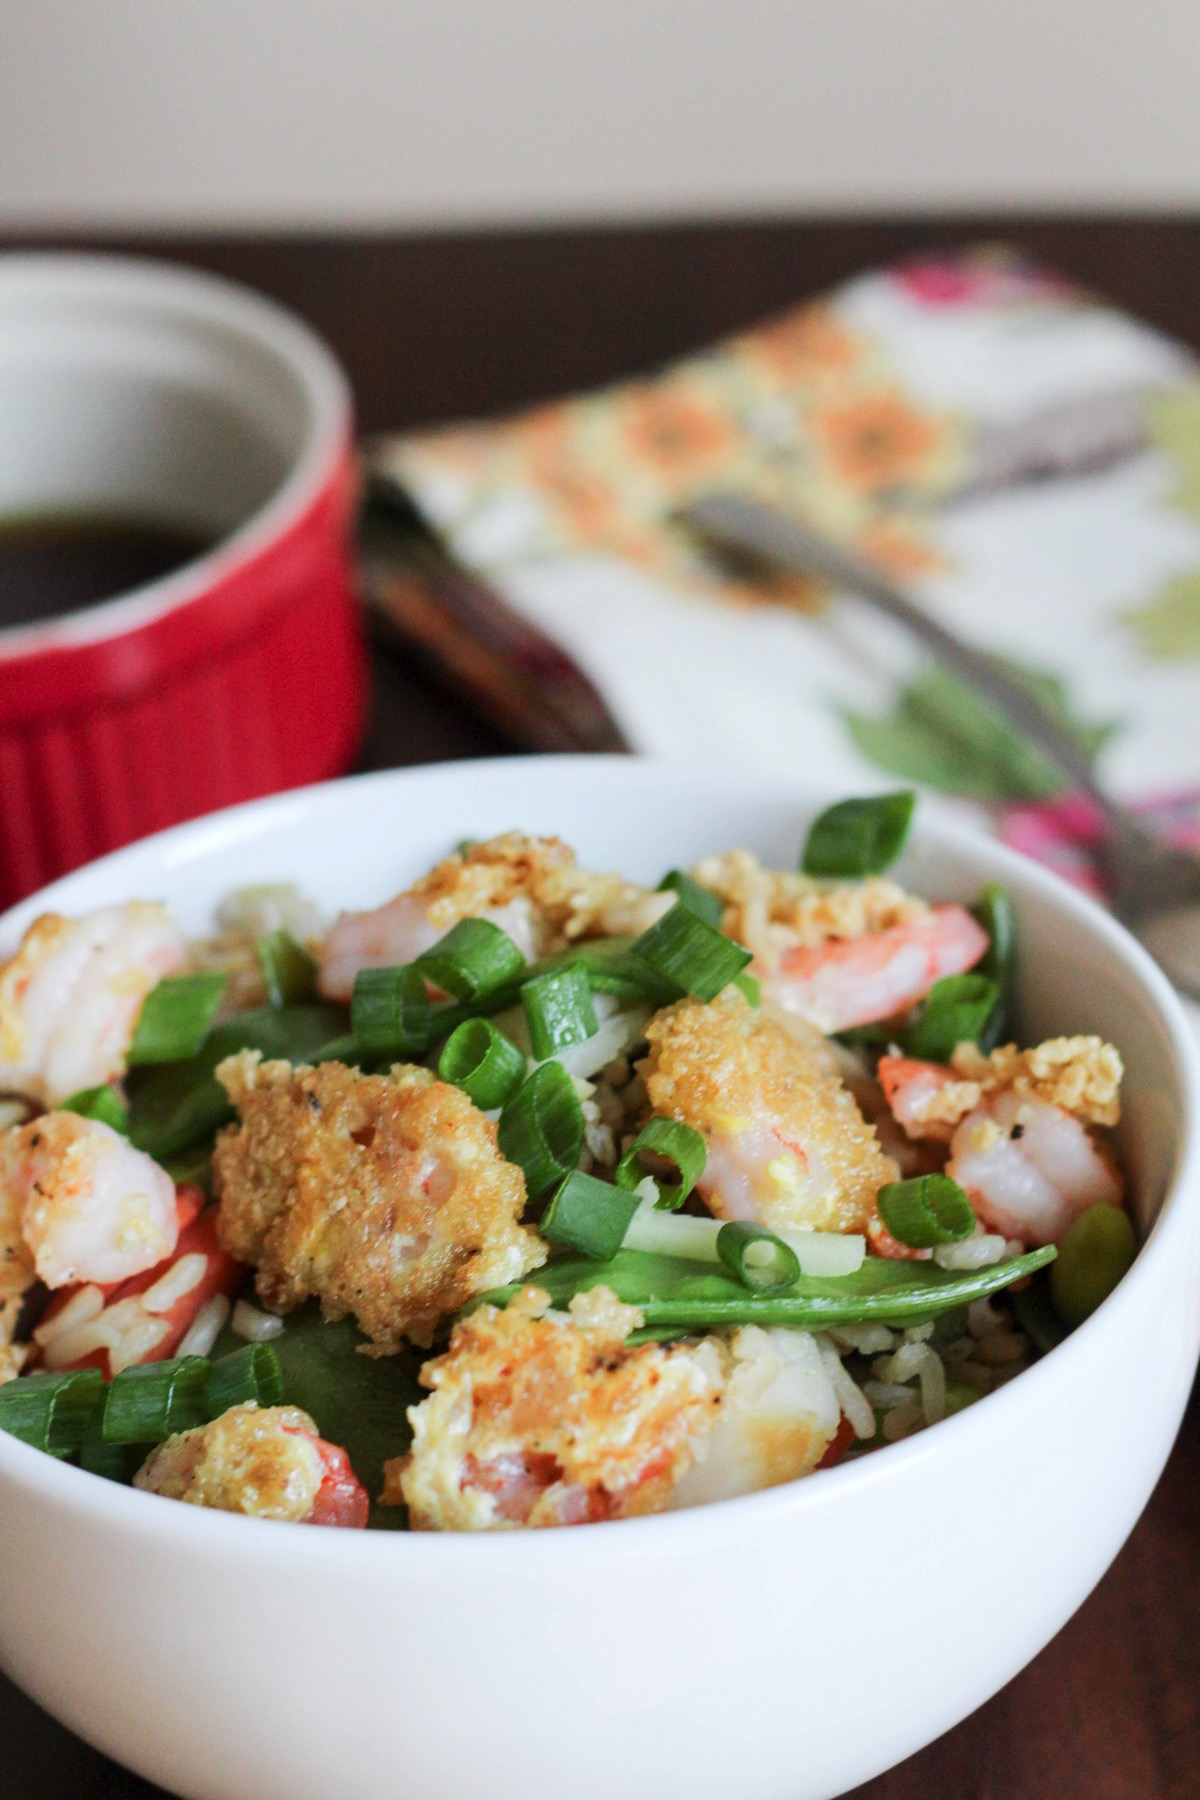 This crispy shrimp and rice bowl is a healthier way to satisfy your fried food craving! Loaded with veggies and drizzled with a soy-ginger glaze, this is the healthy dinner that you'll crave! fitnessista.com #shrimprecipes #crispyshrimp #healthydinner